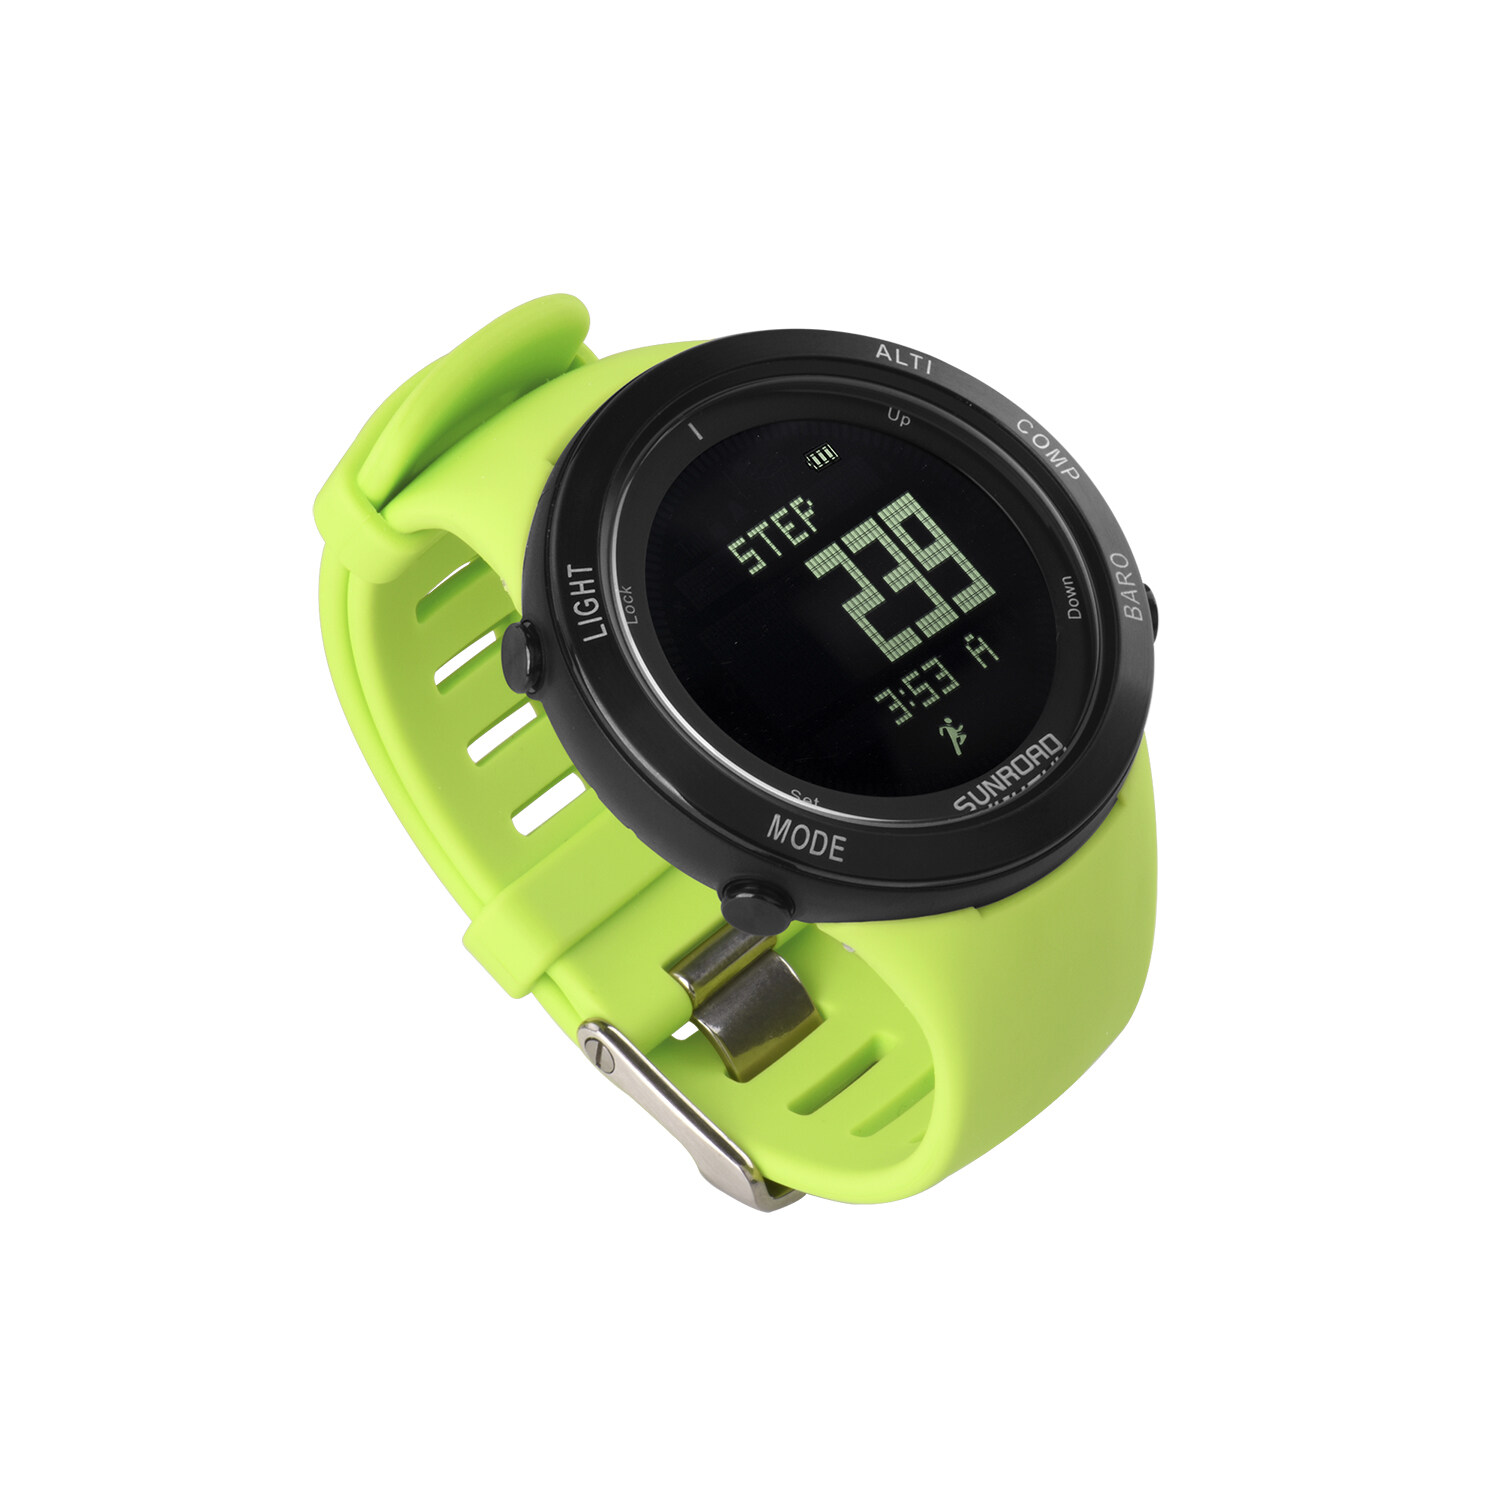 Sunroad heart rate outdoor sports watch with Pedometer, altimeter, climb data, hiking, camping, traveling watch waterproof 2